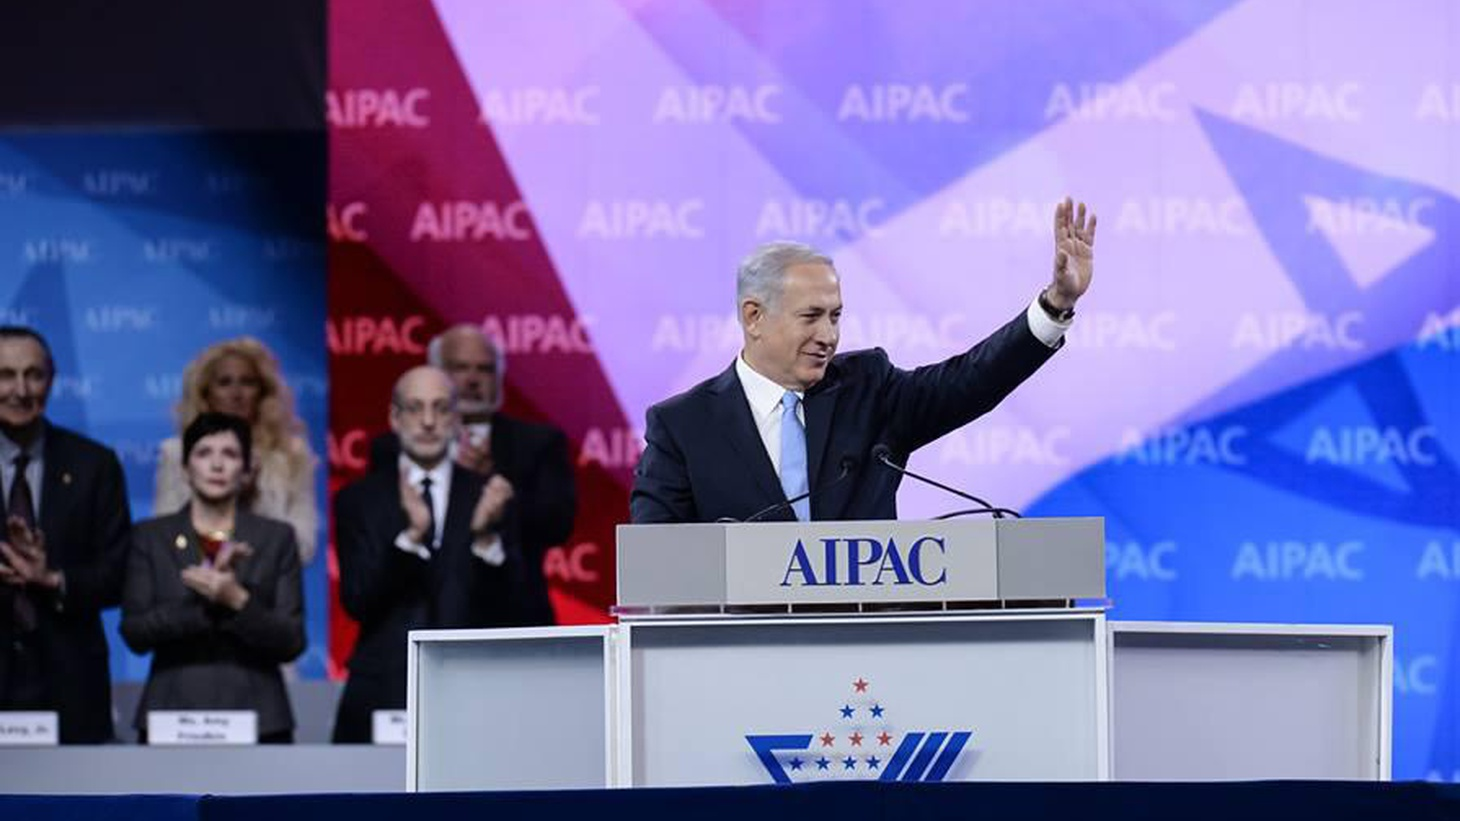 Israeli Prime Minister Netanyahu seemed to be selling peace with the Palestinians today in a speech to AIPAC, the pro-Israel lobby.